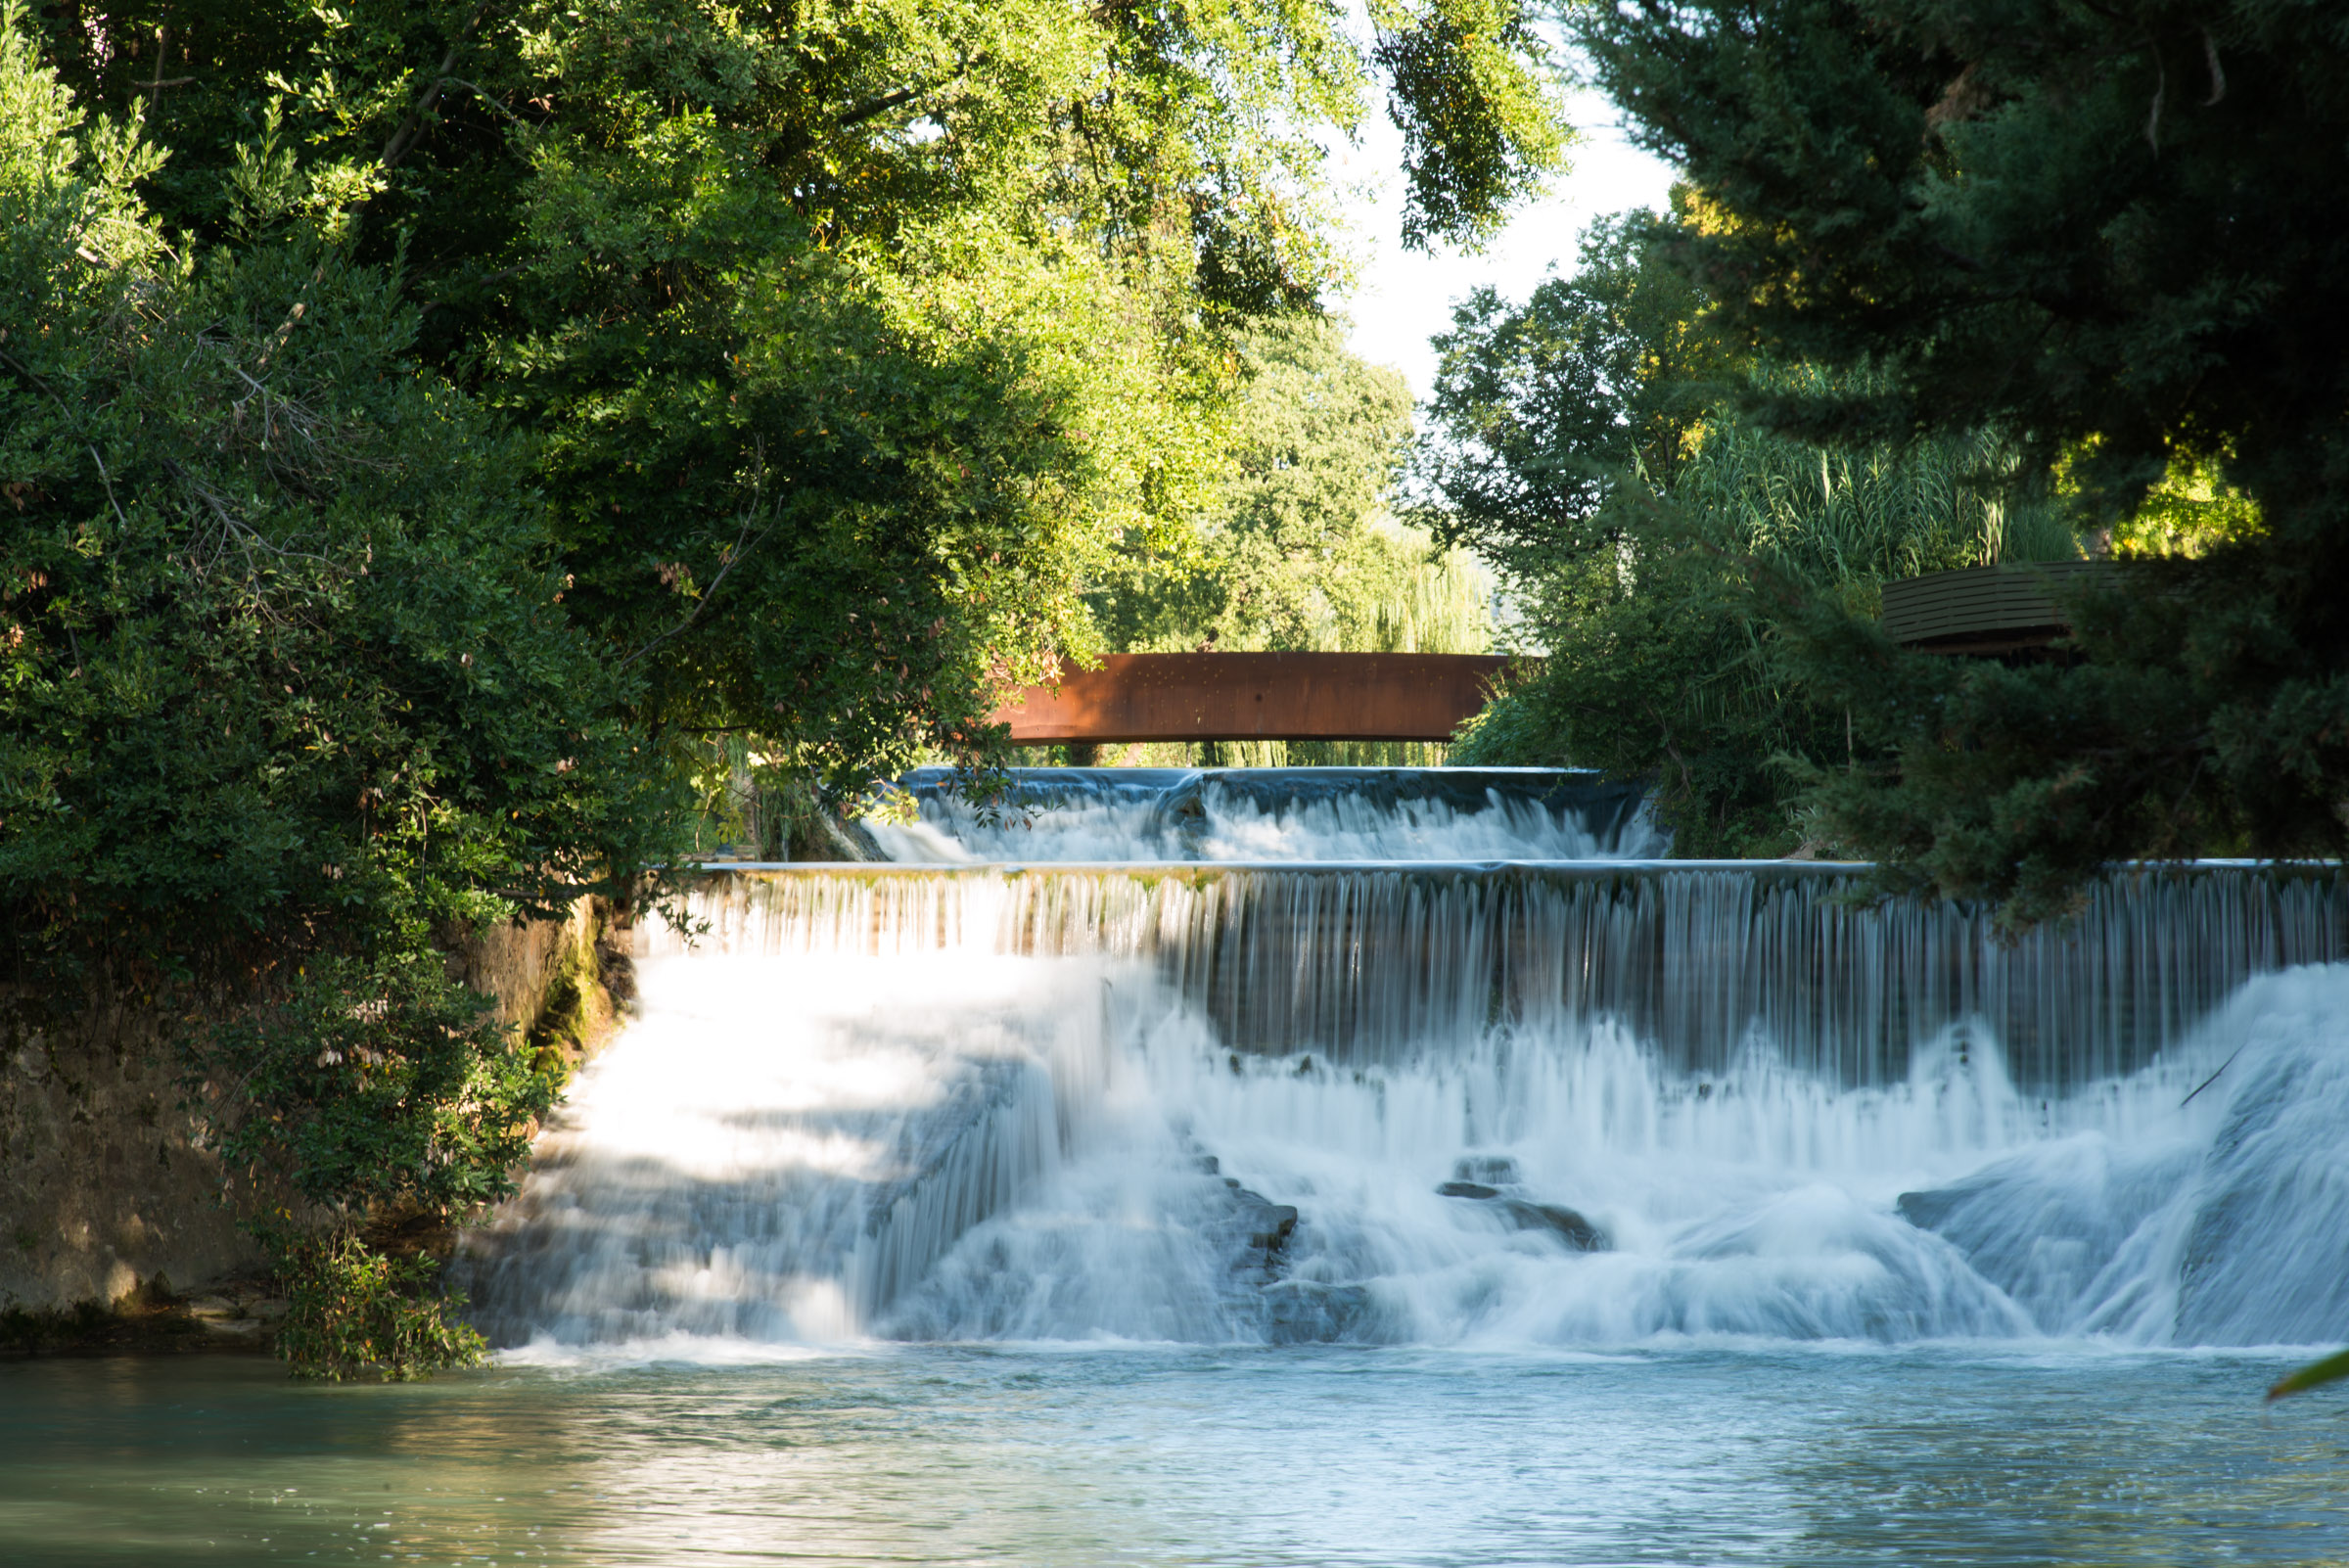 In search of a dose of culture during your vacation? The artist's Foundation in the South of France provides a place of tranquillity and exploration